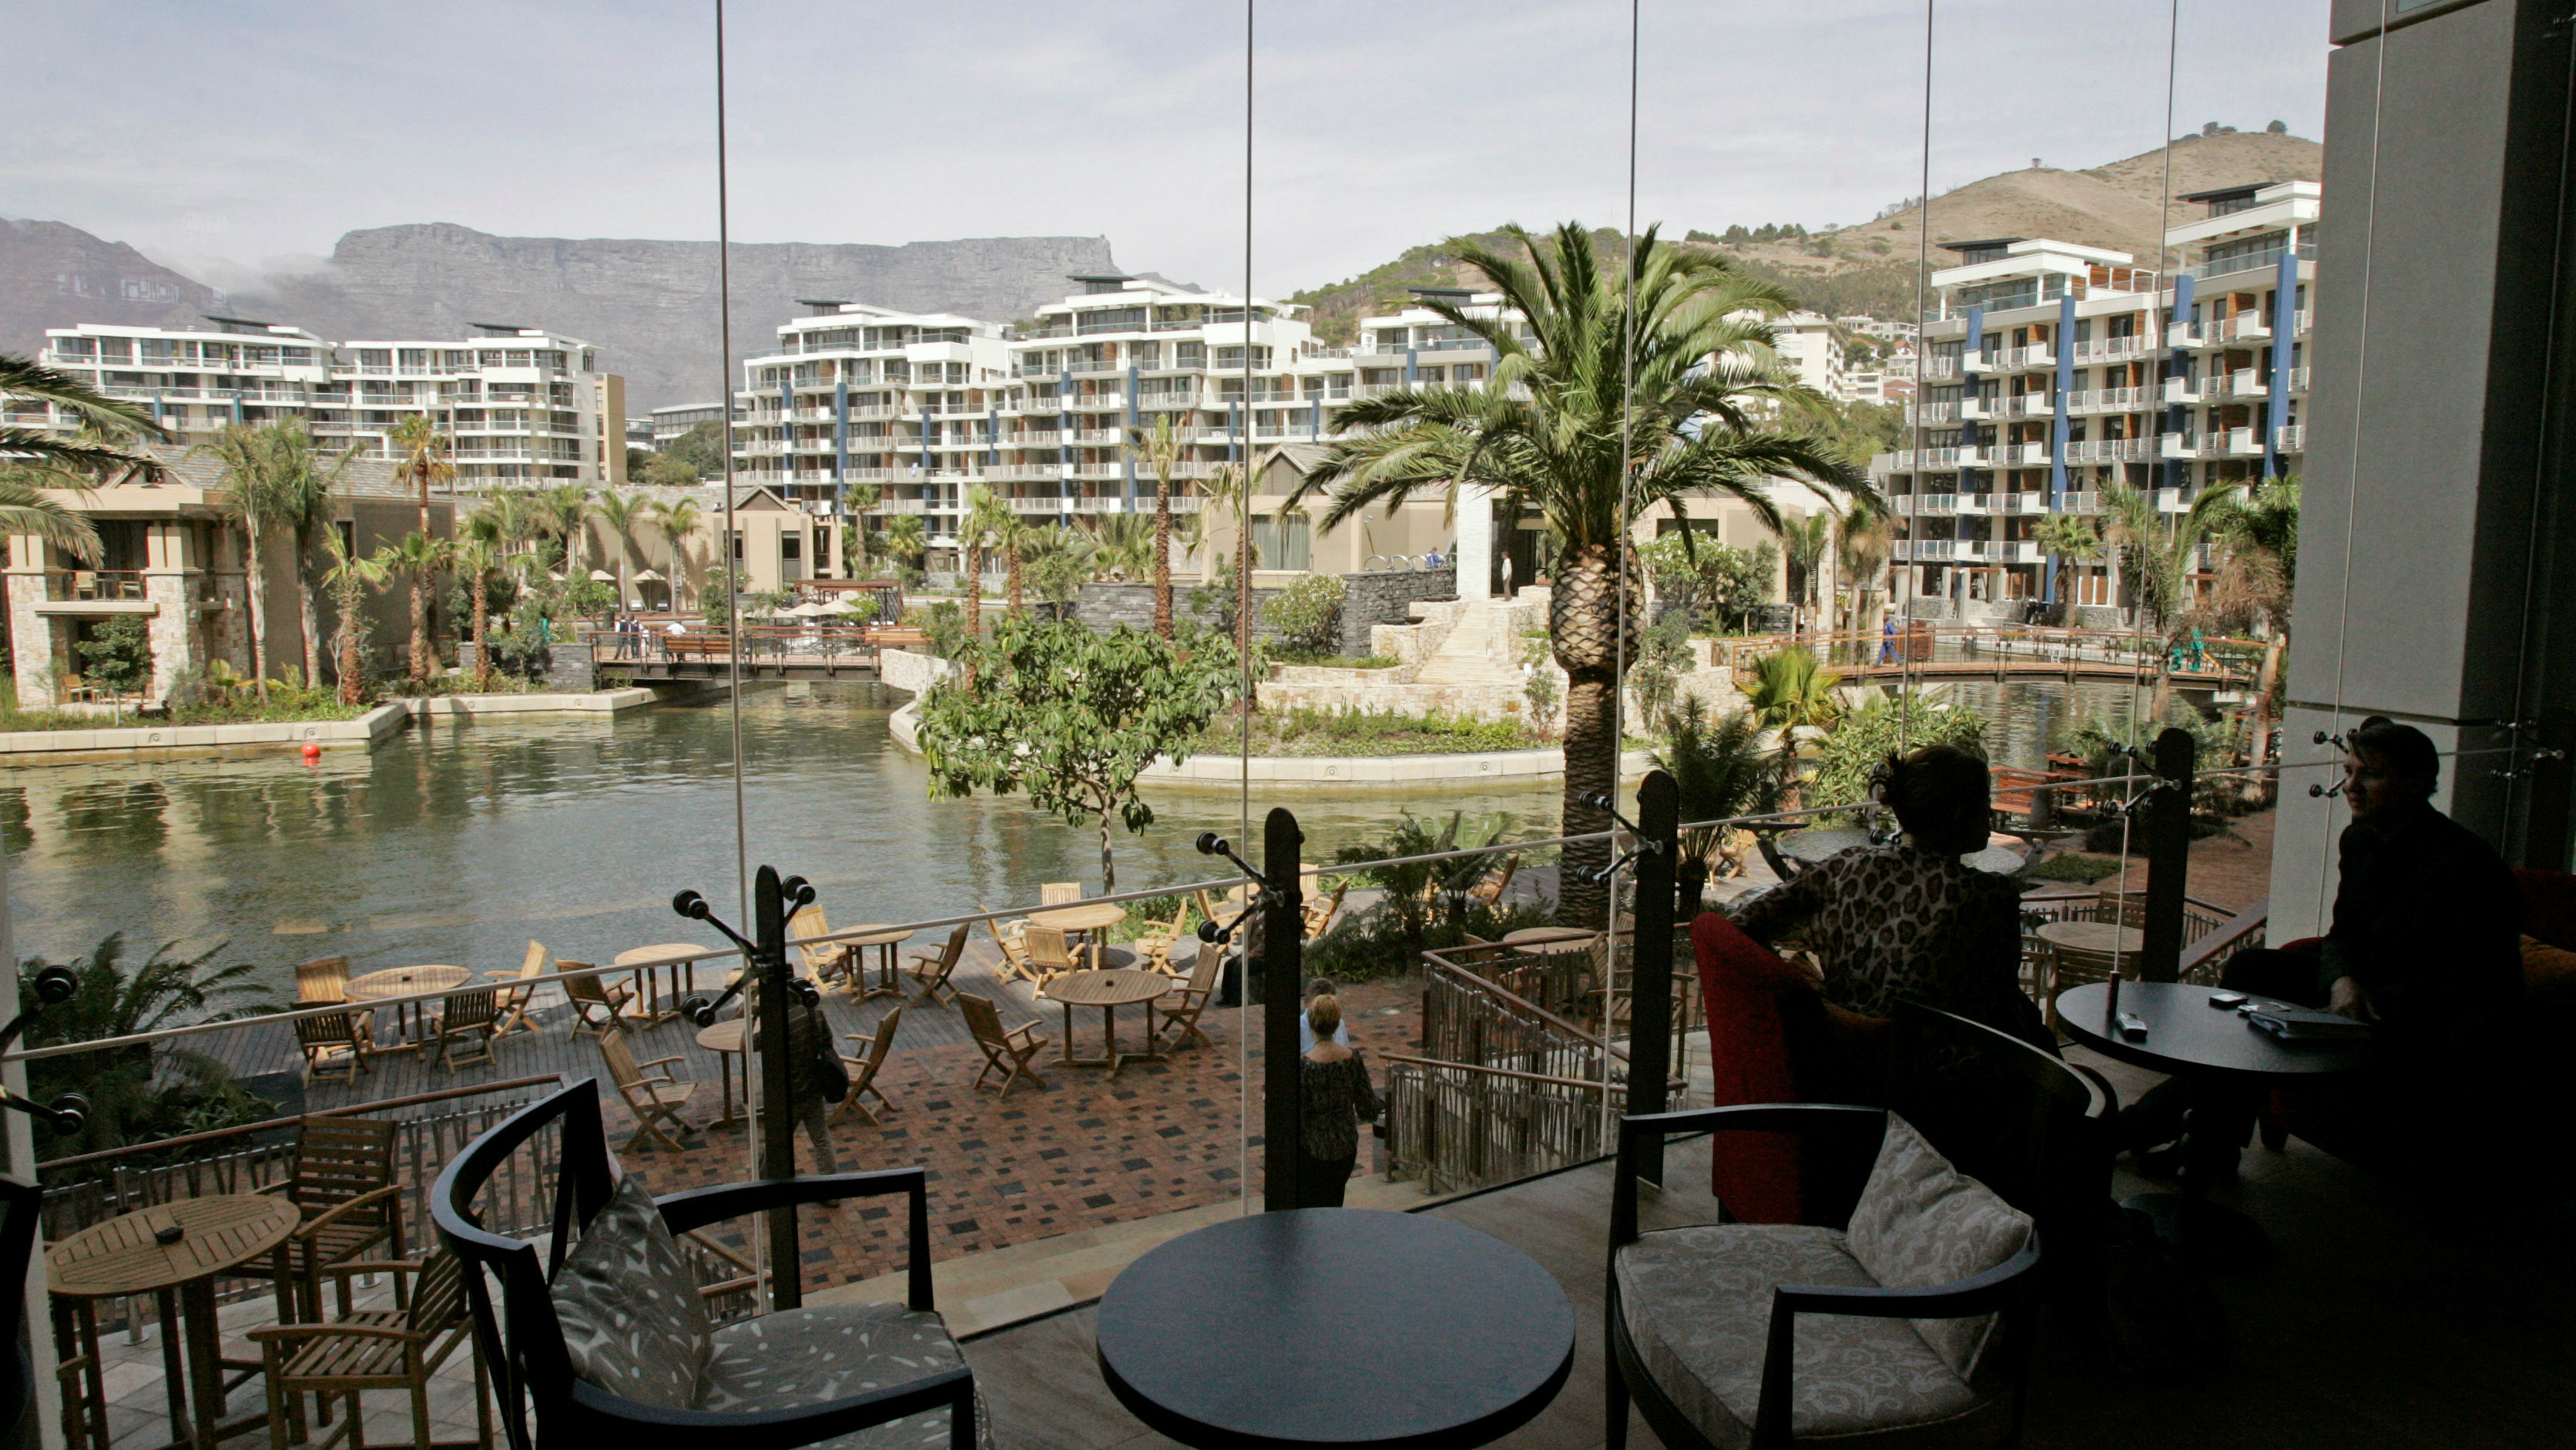 A view of the recently opened One&Only Hotel in Cape Town, South Africa, Monday, March 30, 2009. South African gambling and hotel magnate Sol Kerzner has returned home in style after 15 years, with a luxury resort that he hopes will buck the economic gloom. (AP Photo/Schalk van Zuydam)